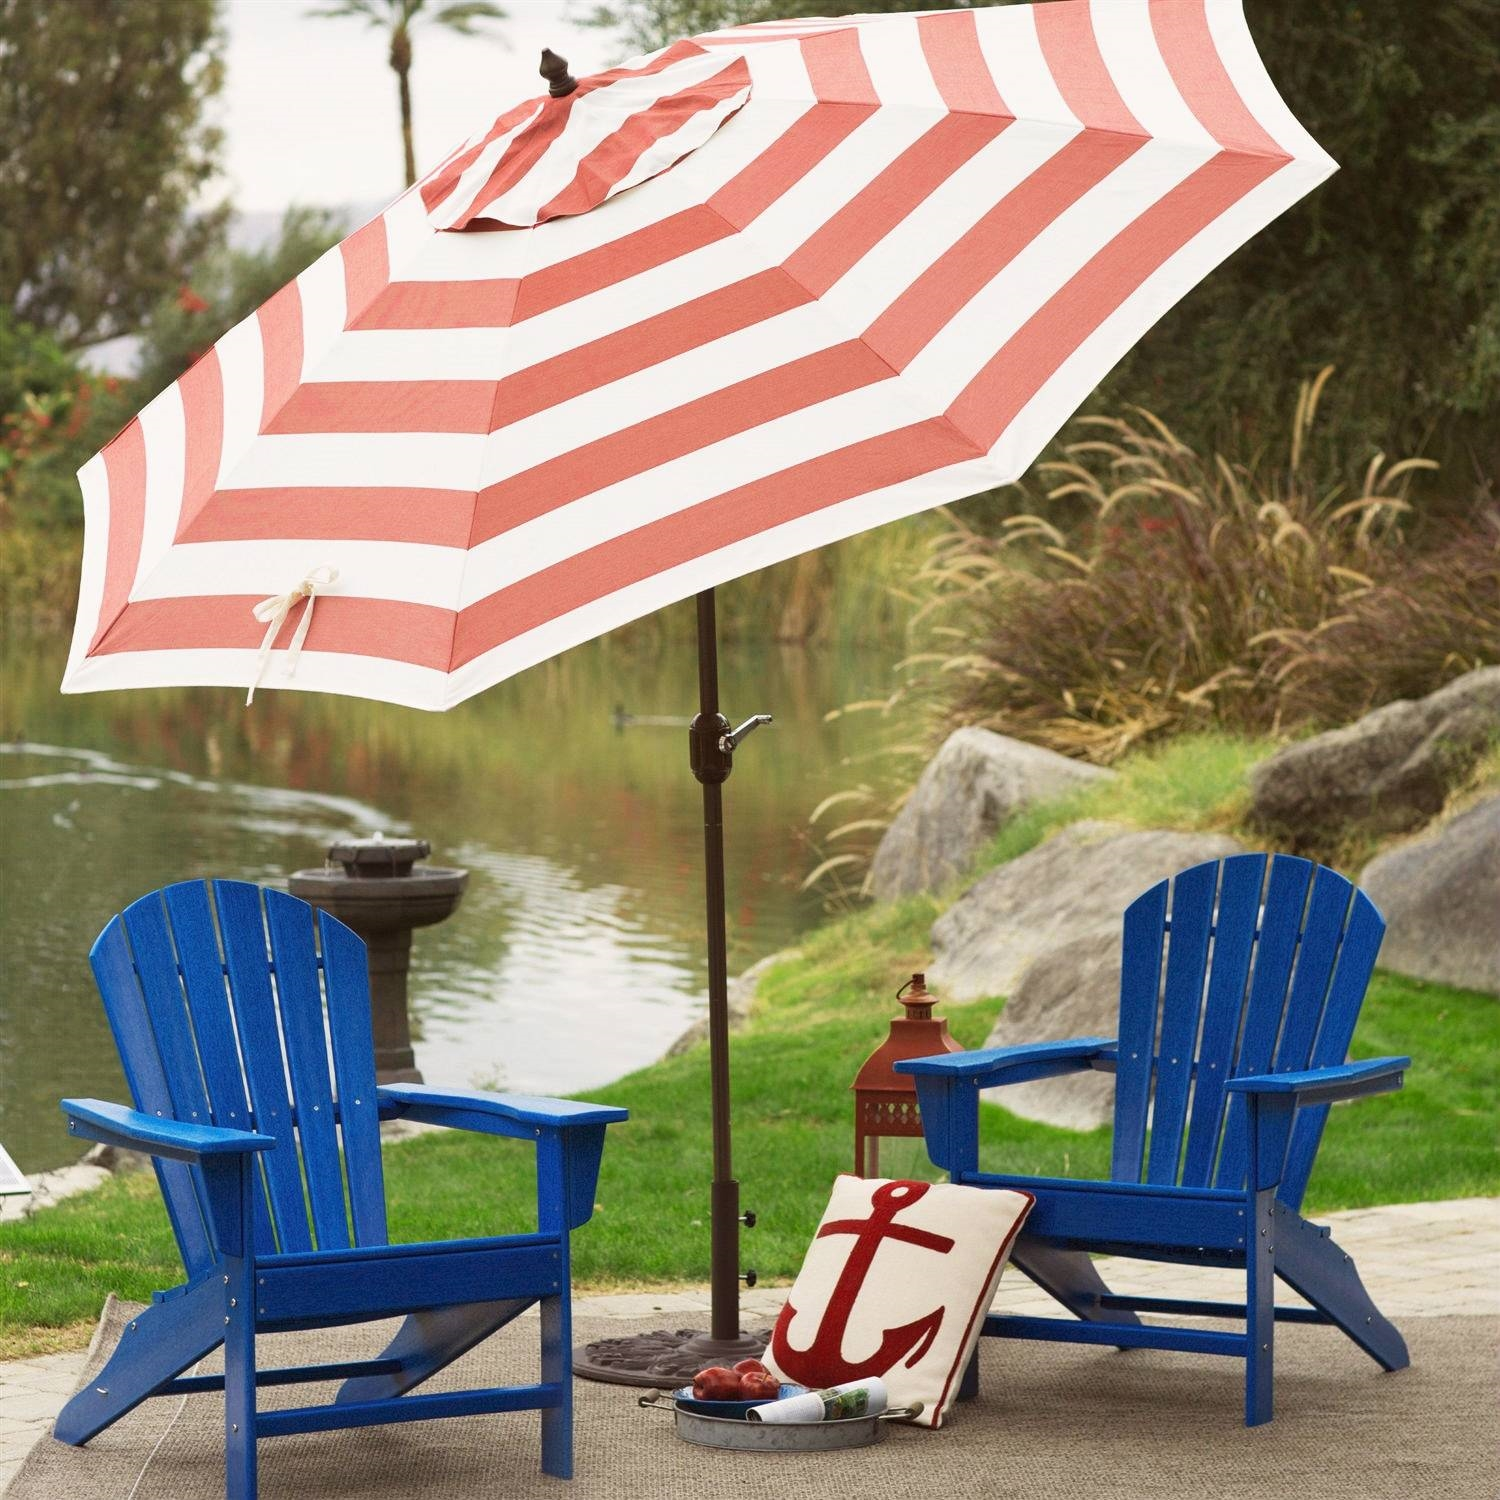 Attirant Outdoor 9 Ft Metal Patio Umbrella With Tilt And Crank Lift In Red And White